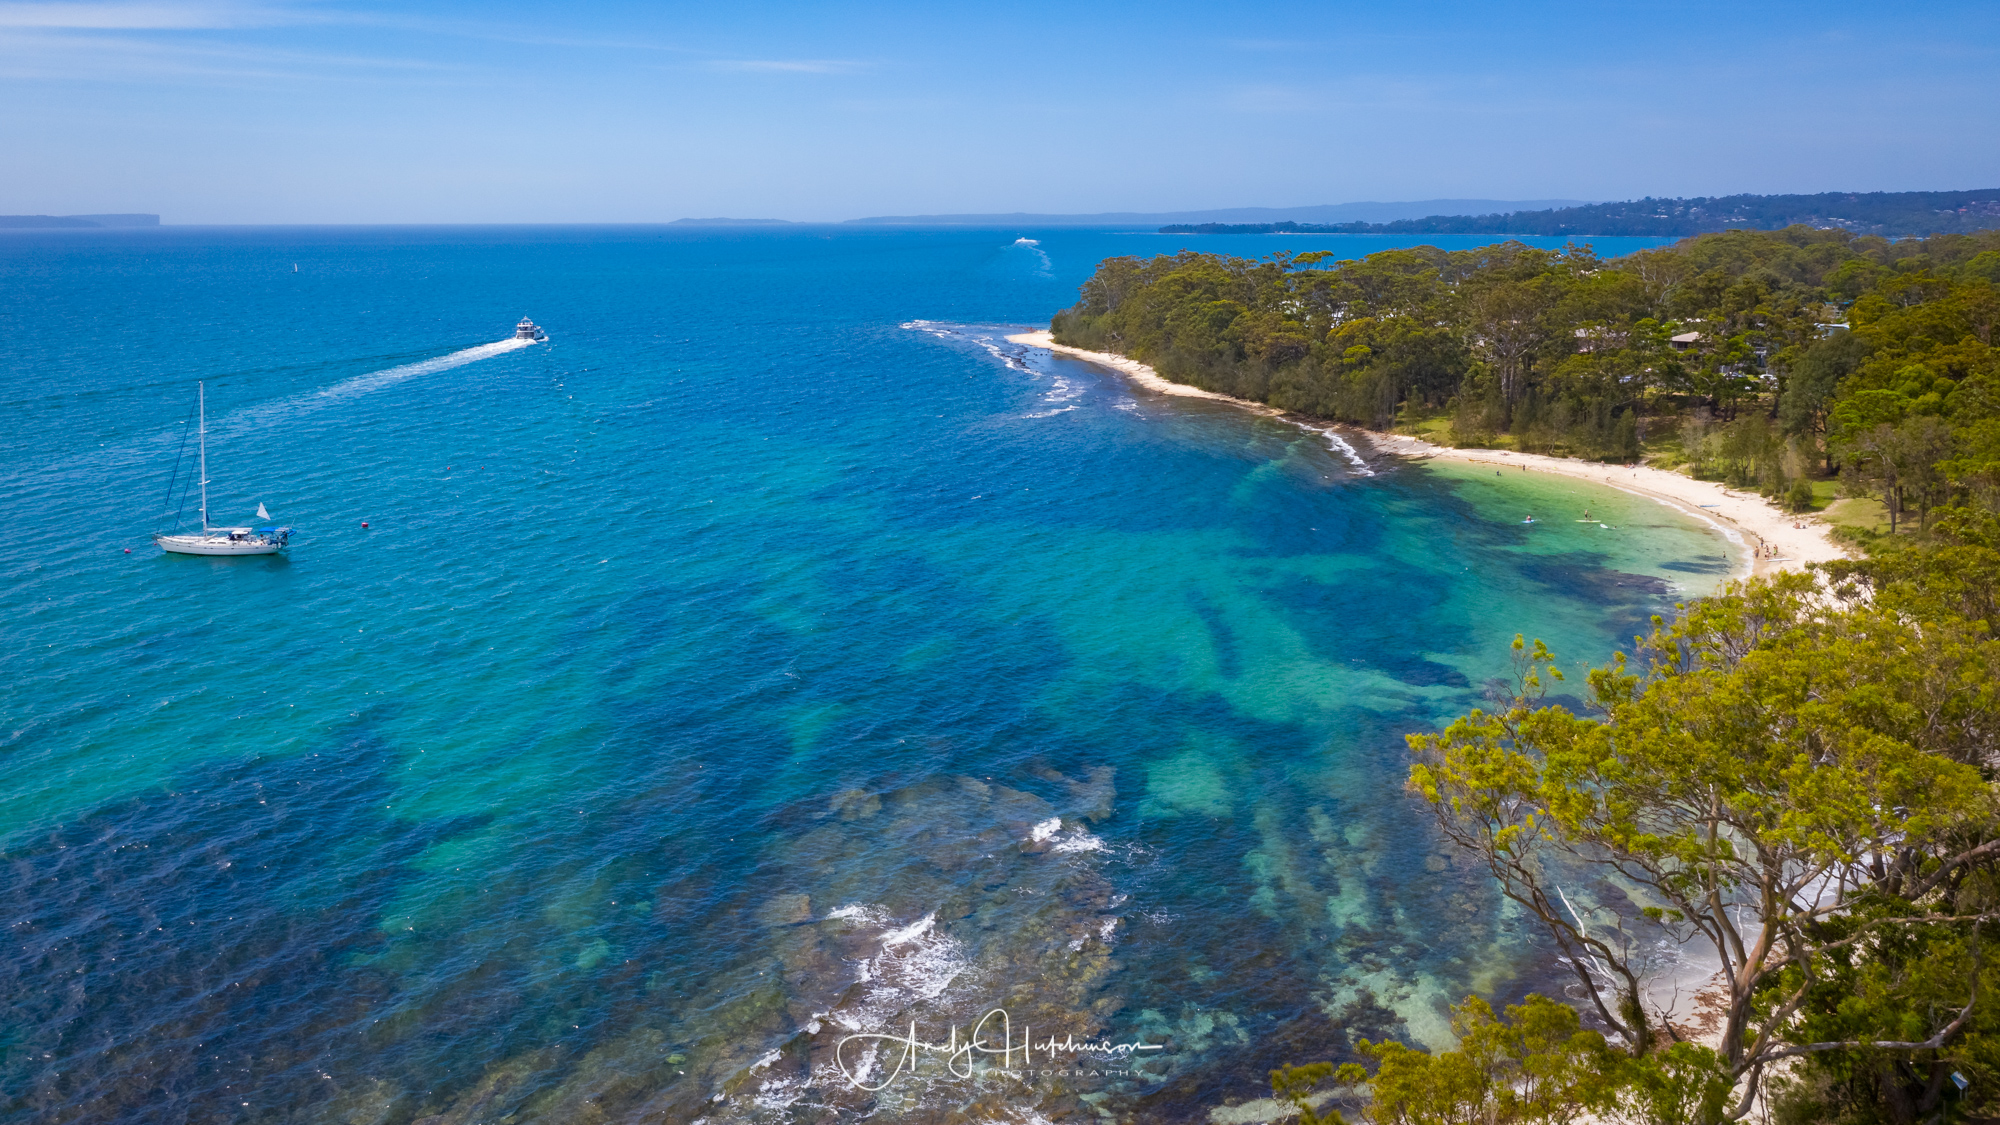 If you want to hit the beach but you don't want to be too far from cafes, shops and toilet facilities, this is your go-to beach. Shark Net is a great snorkelling beach that's nearly always in calm waters. You can even rent a kayak or SUP to enjoy here.